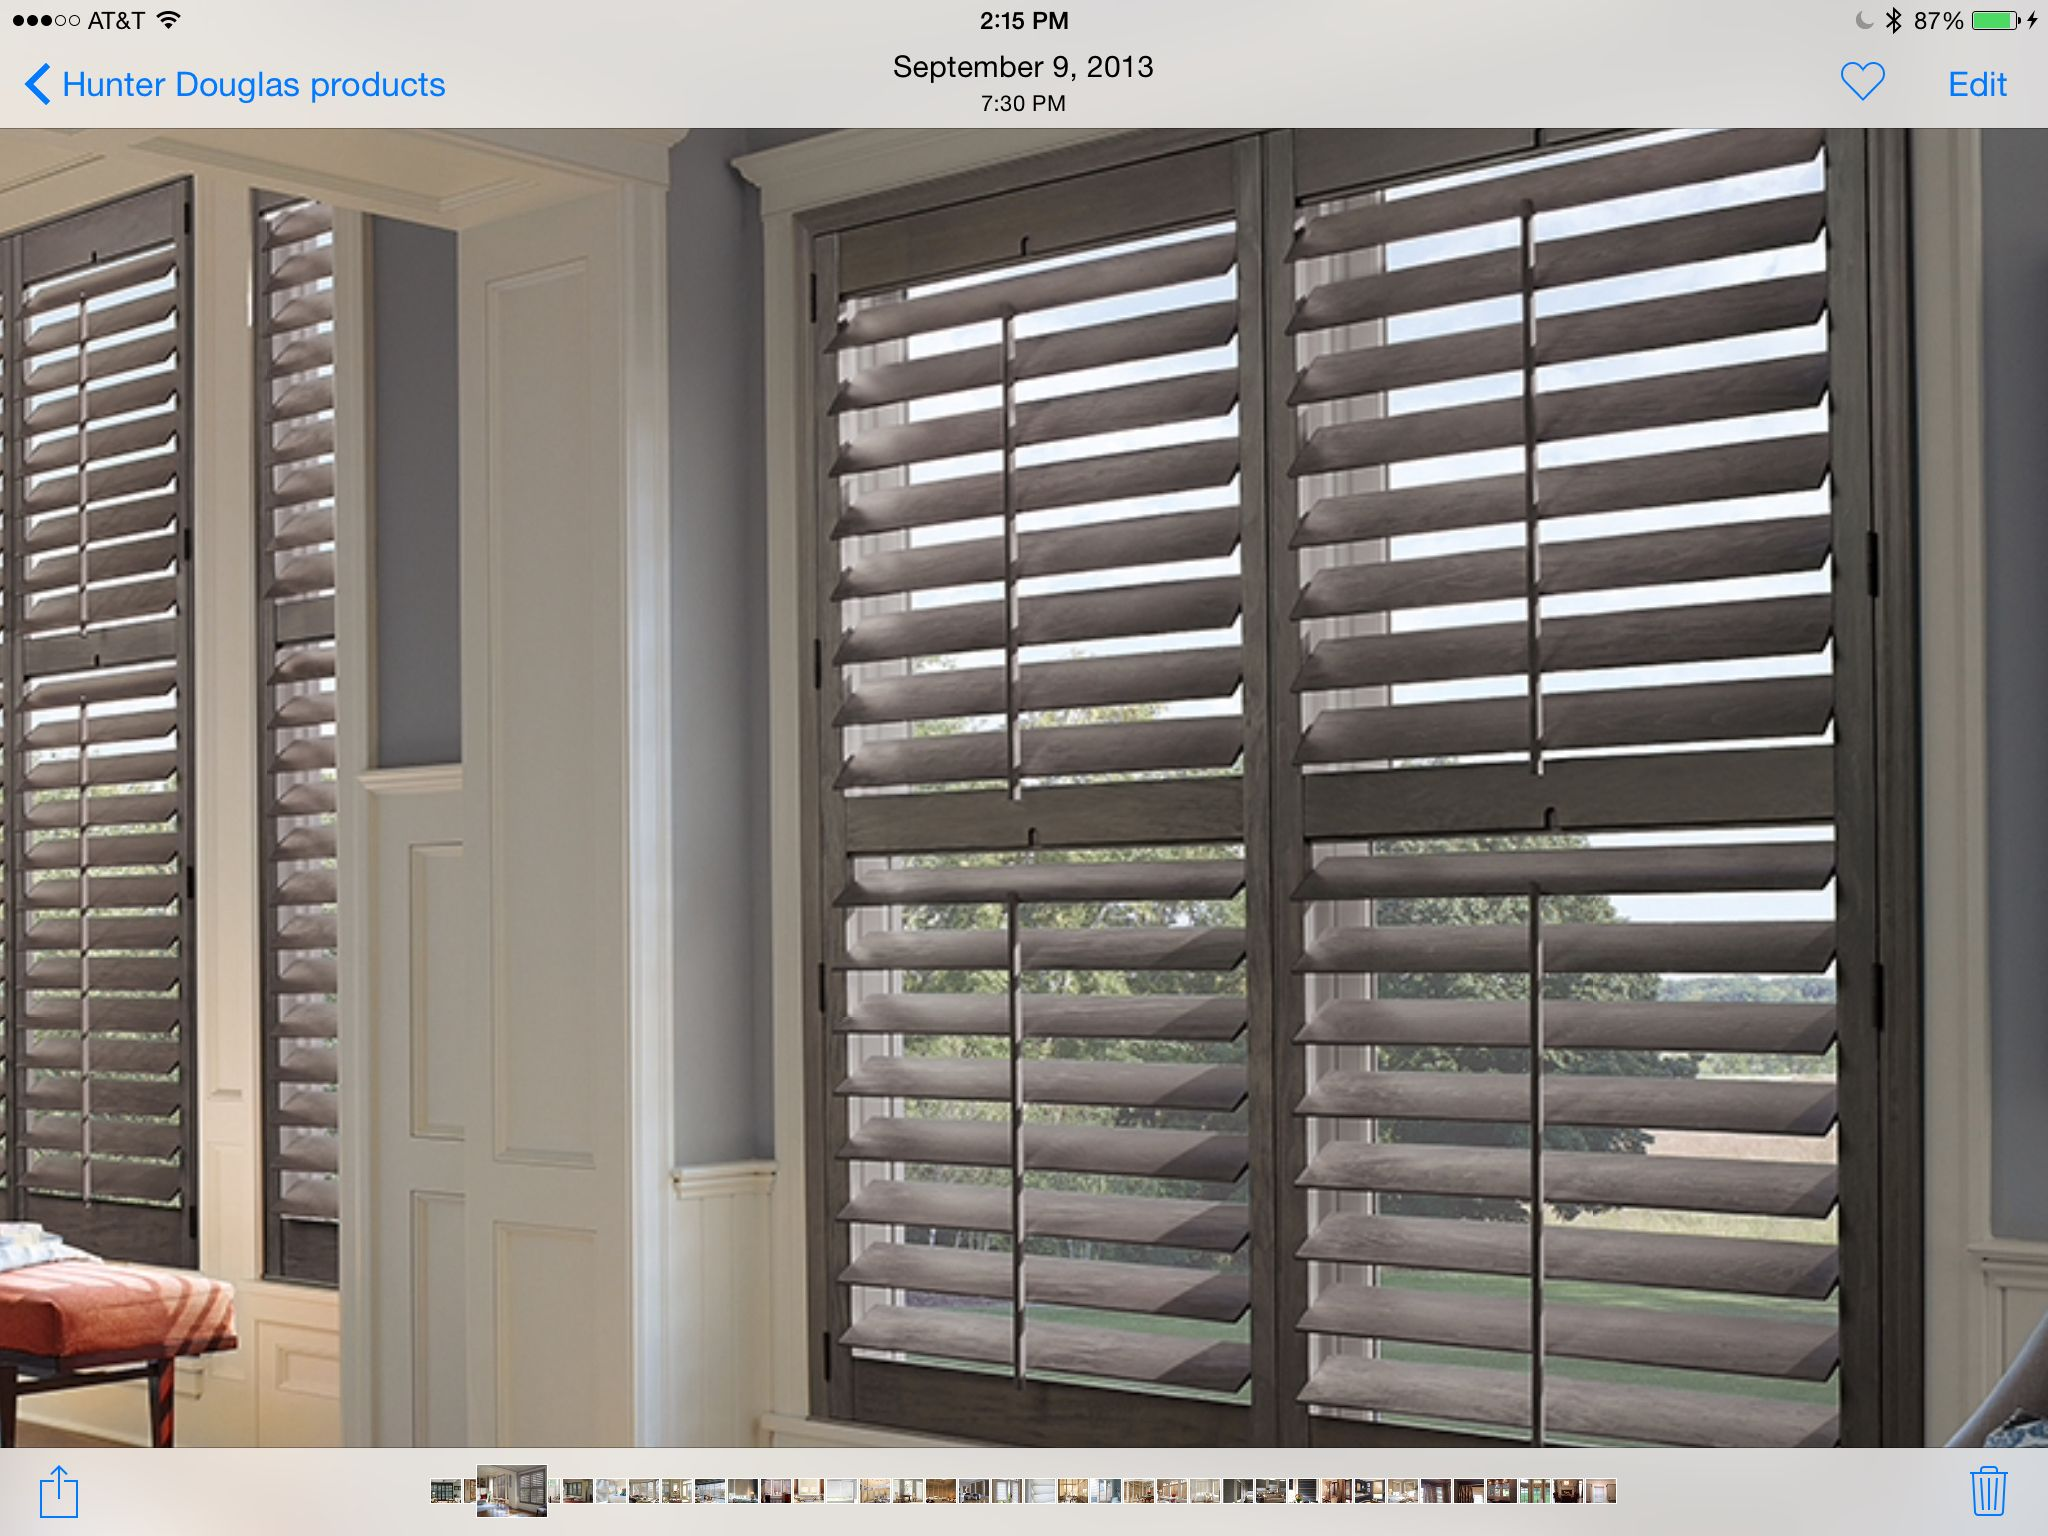 Double Hung Shutterrs Shutters By Fresh Twist Pinterest Shutters Blinds And Norman Shutters